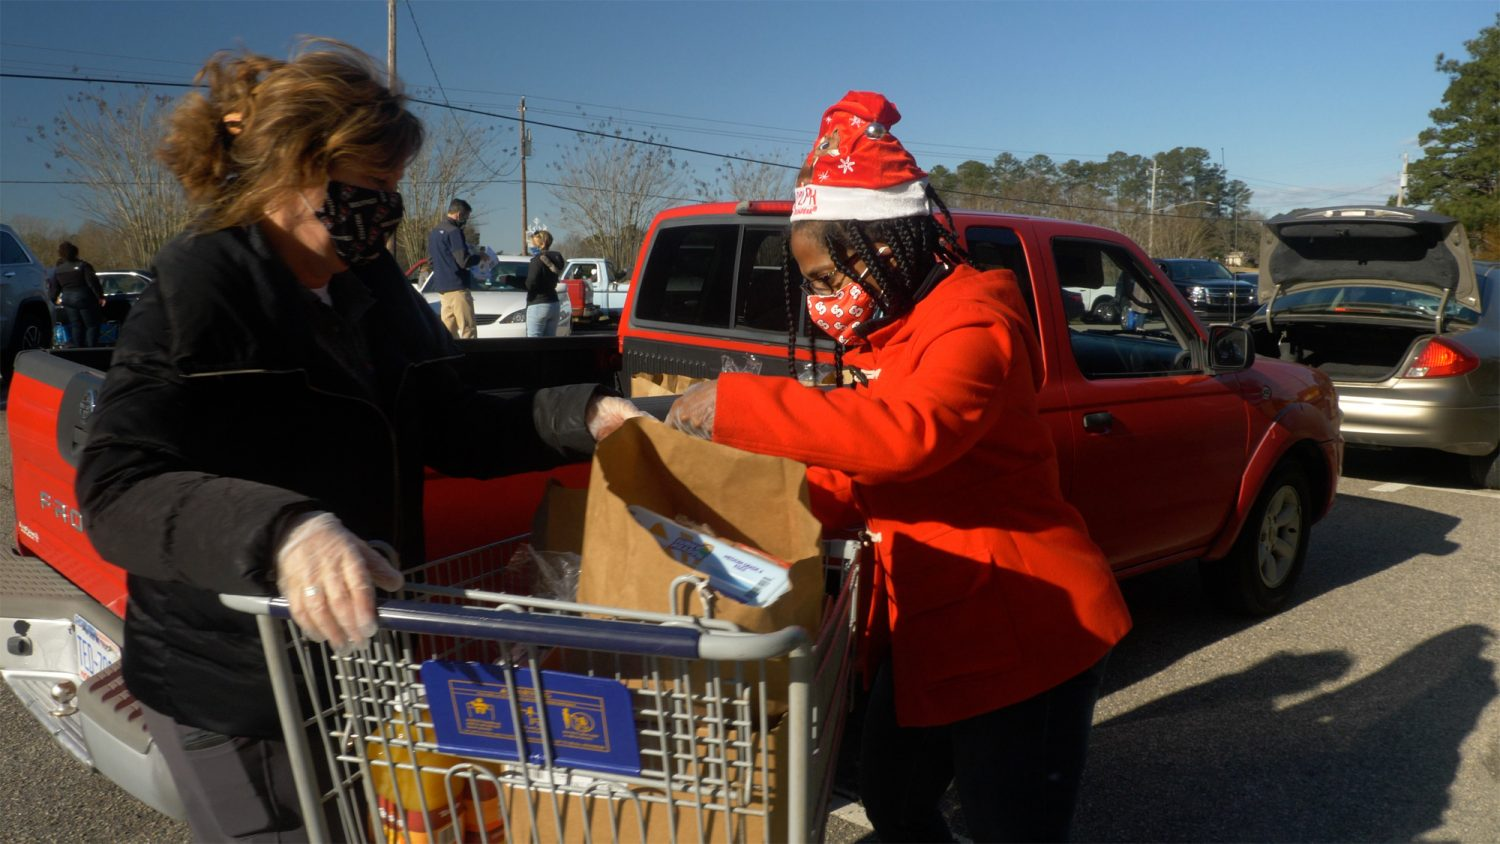 Two women assist with loading grocery bags into the back of a pickup truck as part of N.C. Cooperative Extension's Wake County Center food drive during the COVID-19 pandemic.